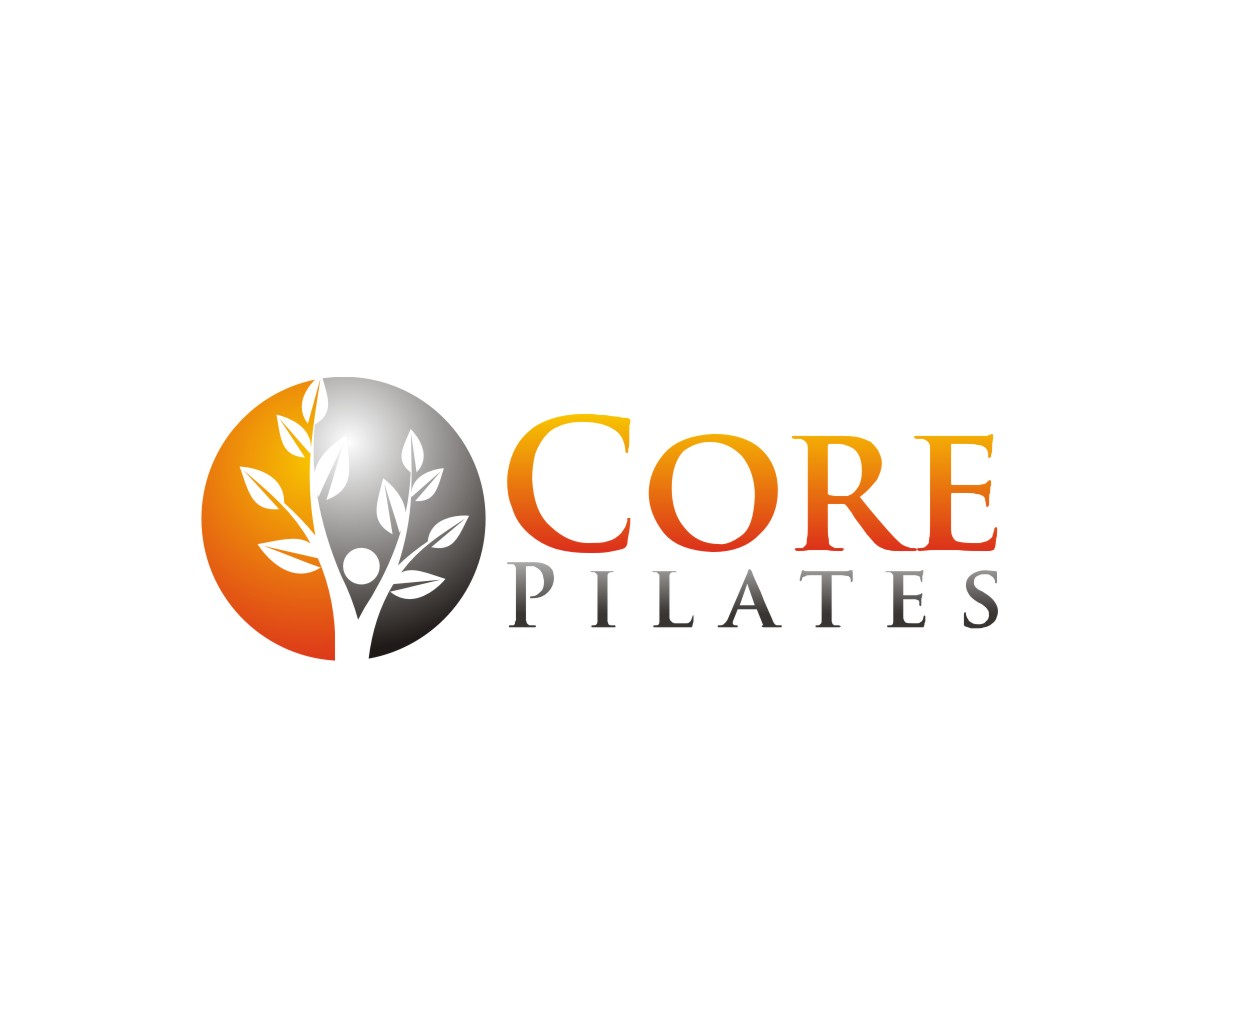 Logo Design by Reivan Ferdinan - Entry No. 112 in the Logo Design Contest Core Pilates Logo Design.